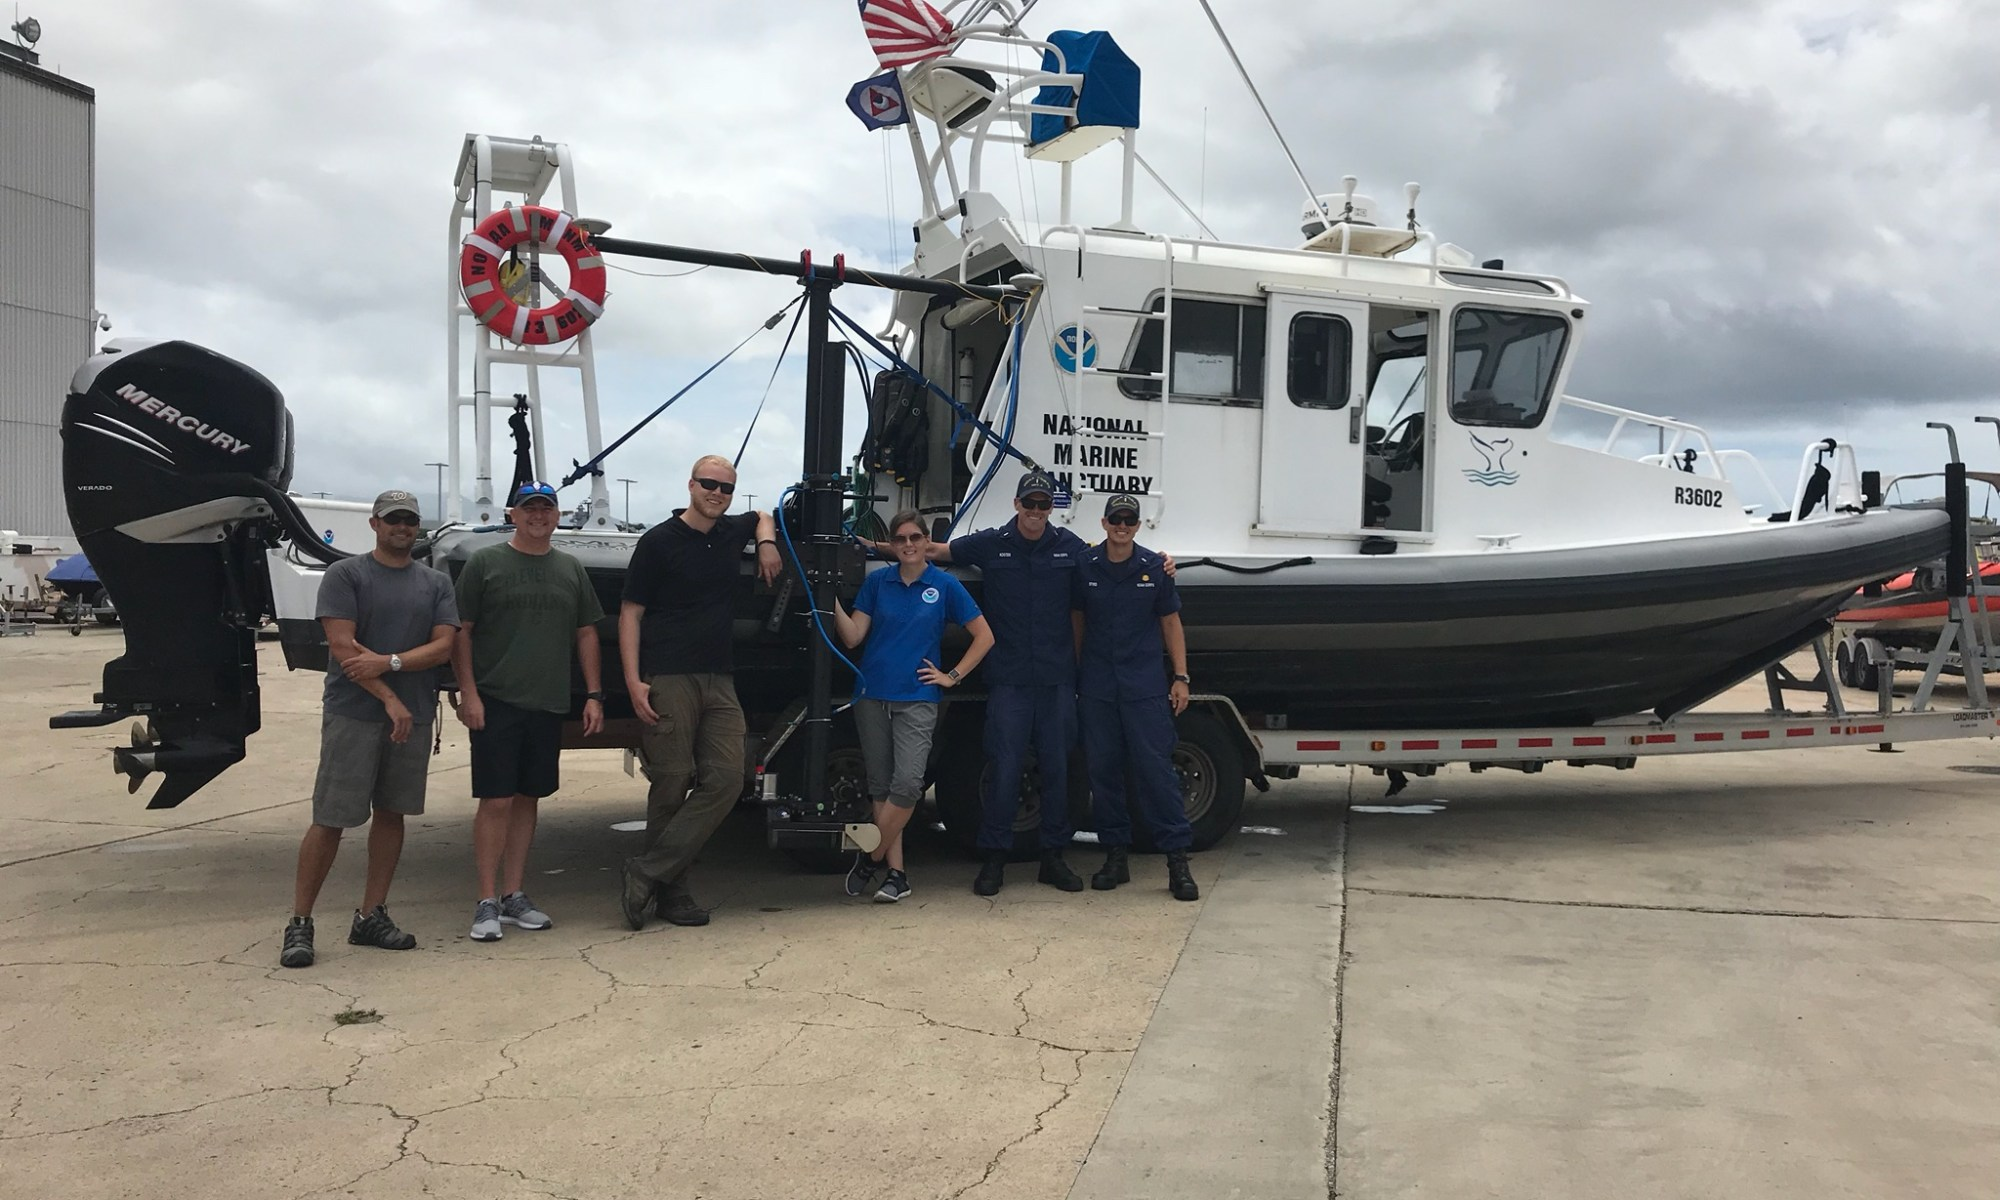 Coast Survey's hydrographic survey experts along with the Office of National Marine Sanctuary staff are ready to survey Honolulu Channel following Hurricane Lane.